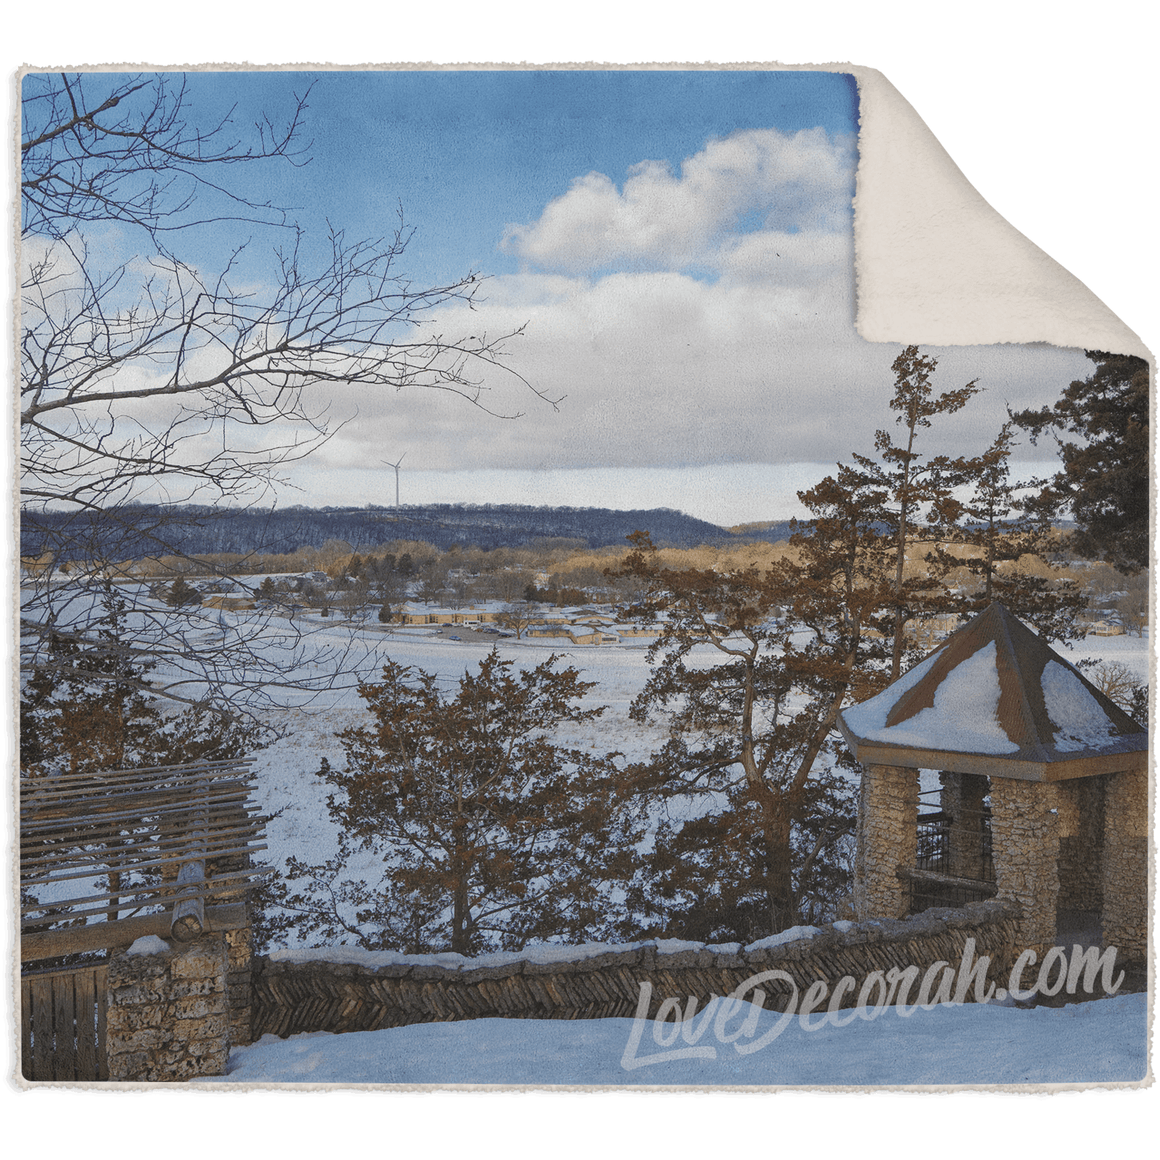 Blanket, Fleece Sherpa, Phelps Overlook Decorah Iowa - Kari Yearous Photography WinonaGifts KetoGifts LoveDecorah